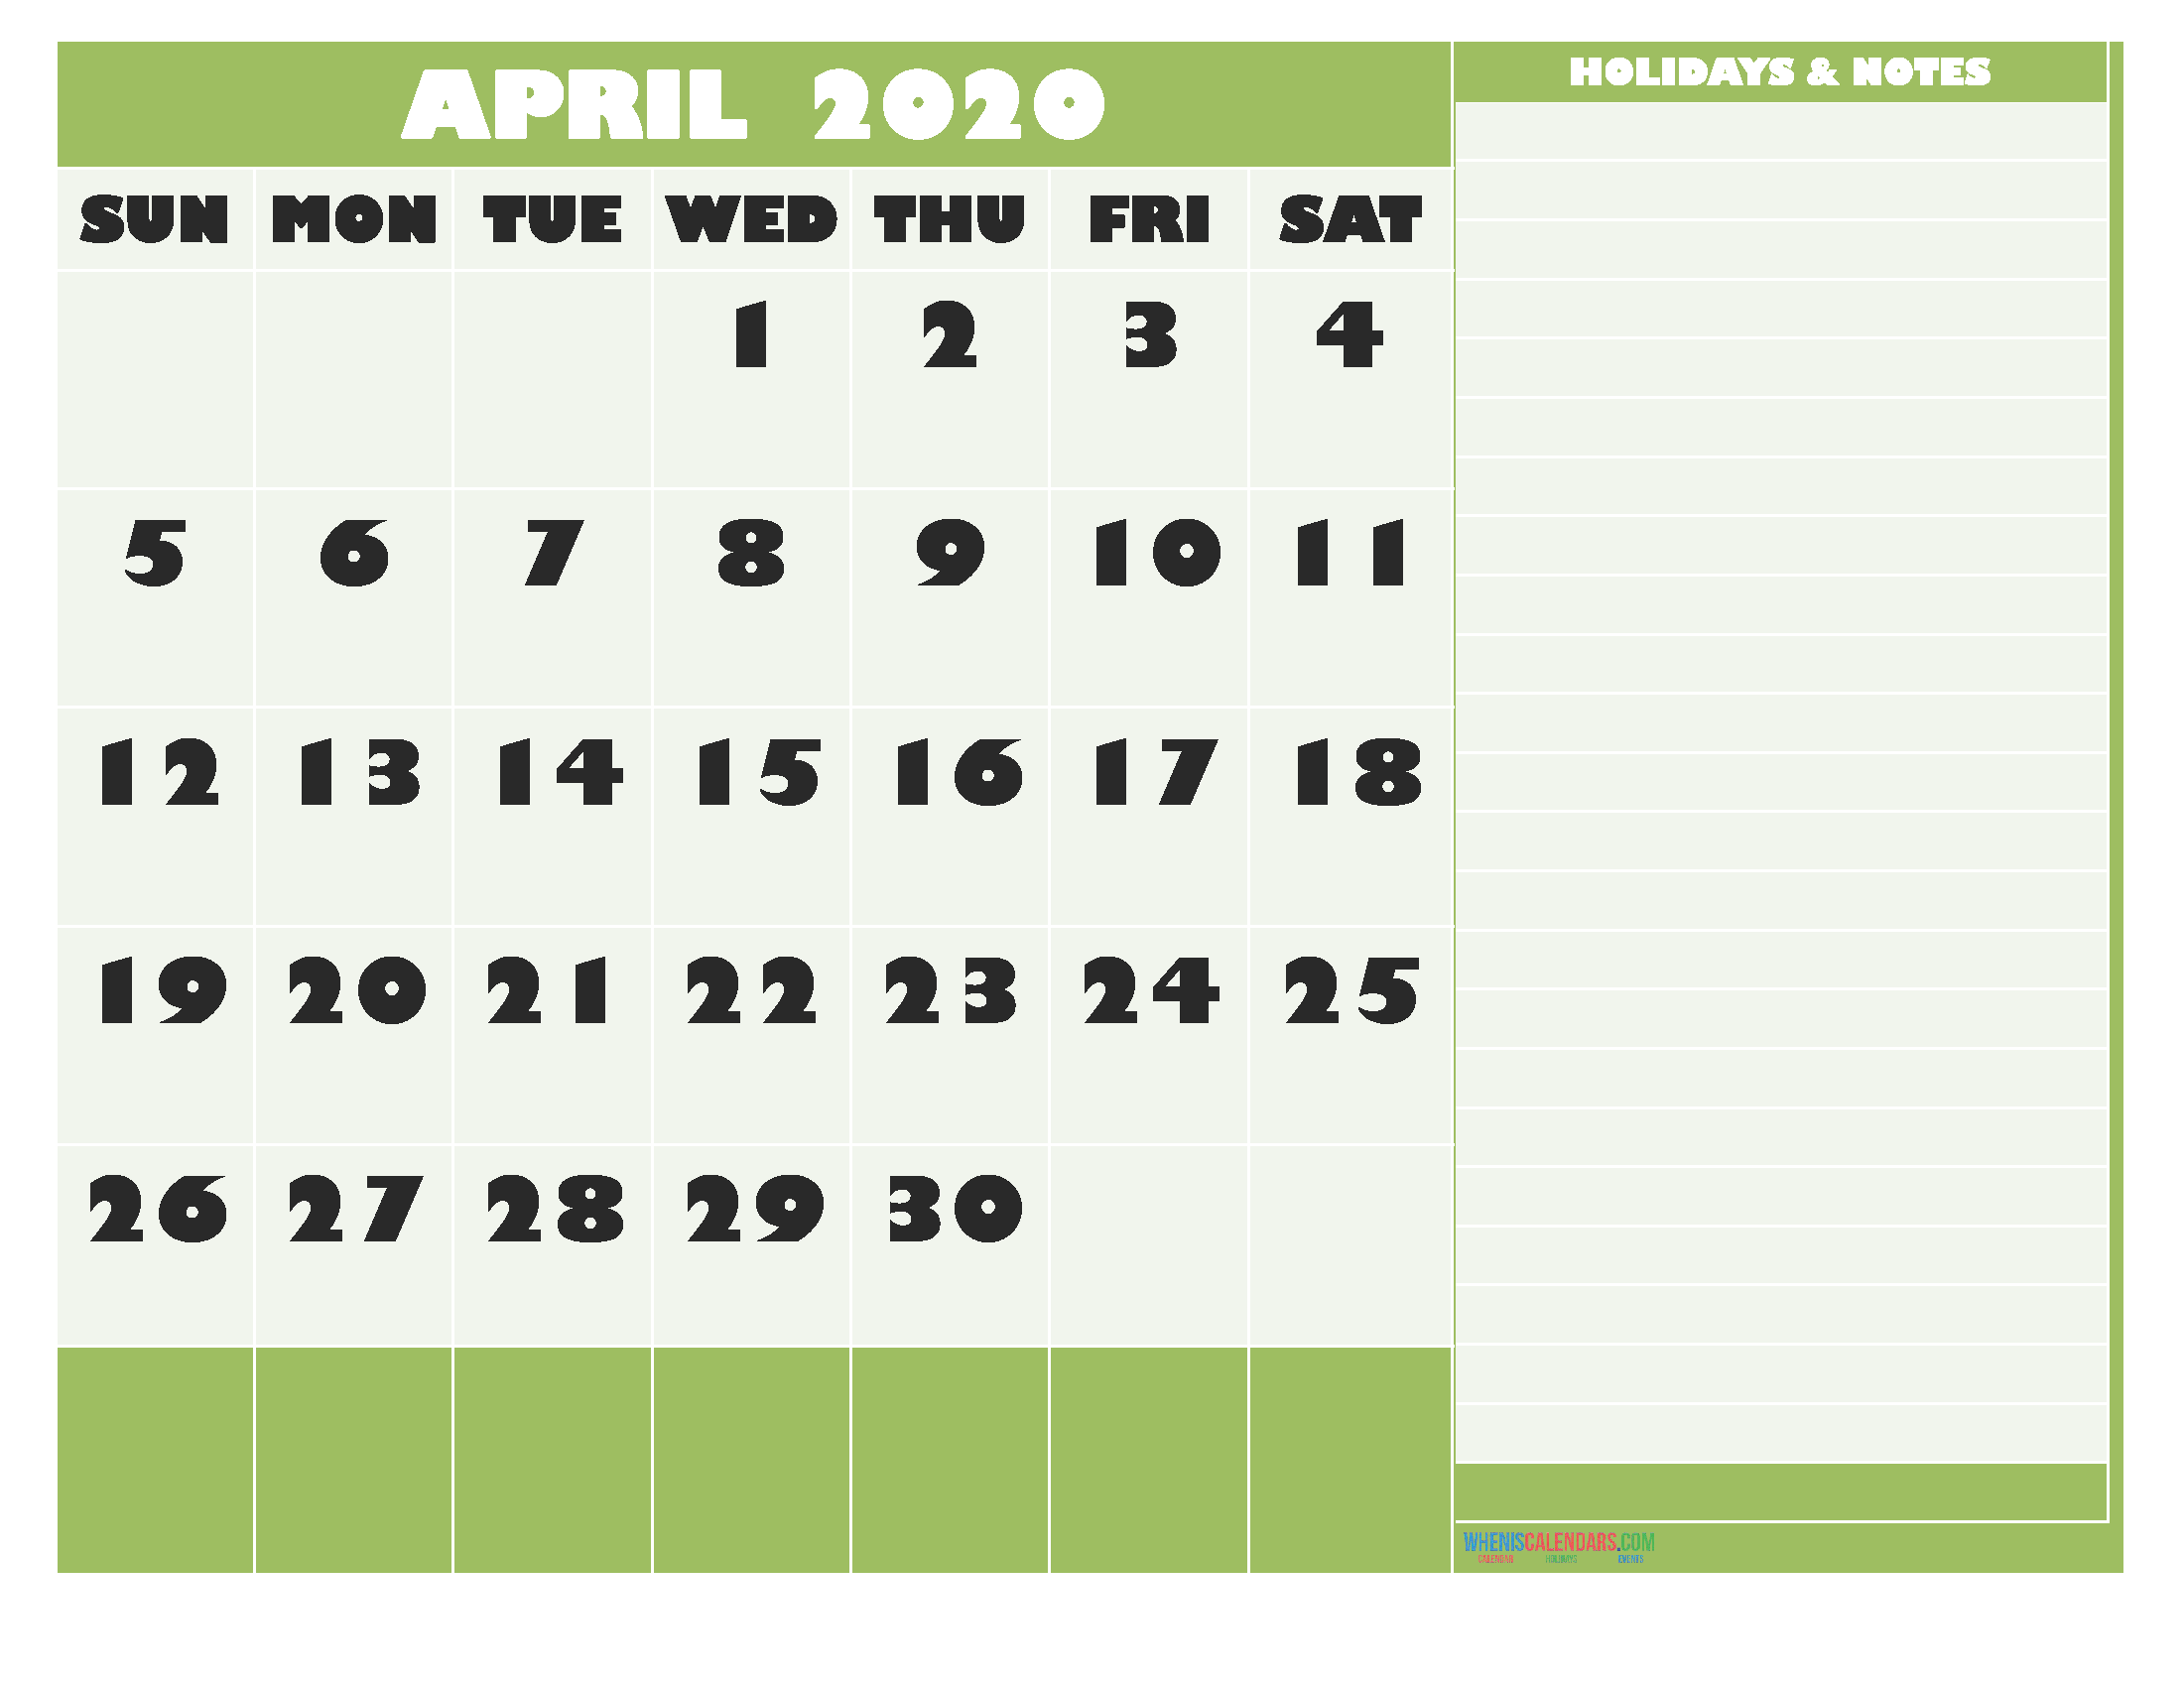 April 2020 Calendar with Holidays Free Printable